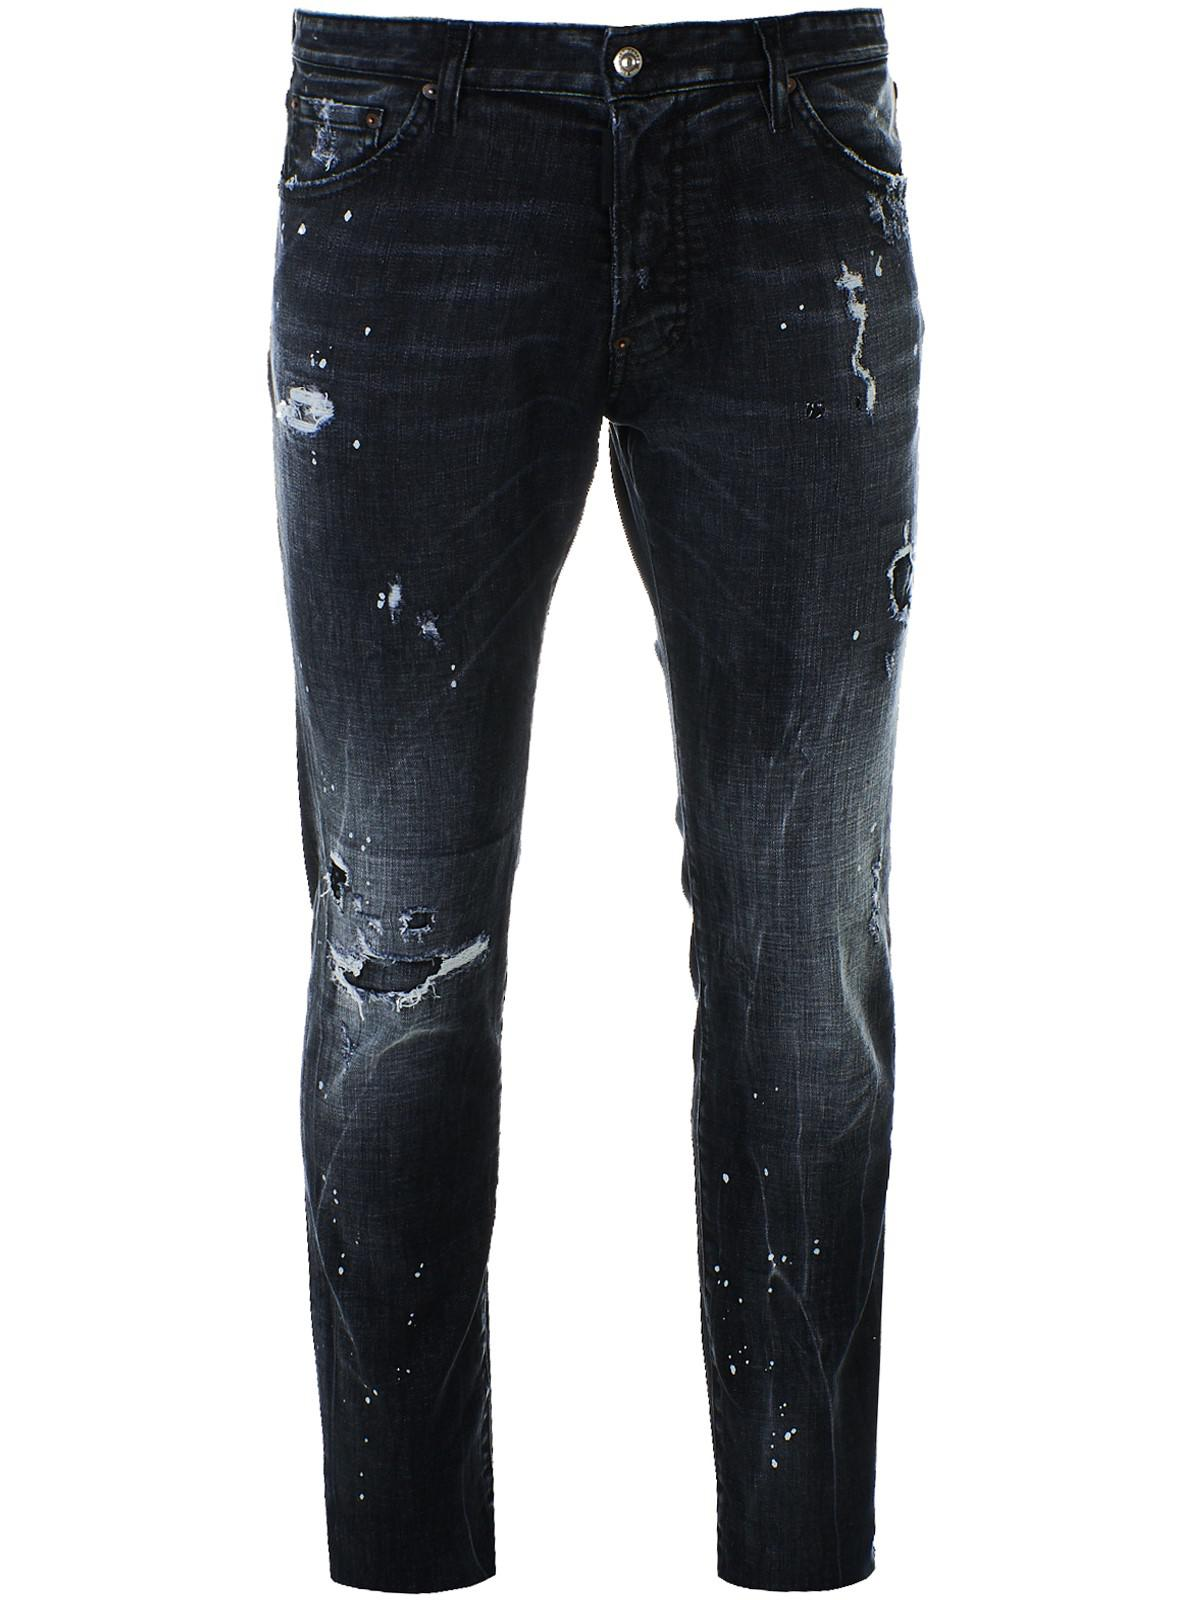 1d20810a406 Lyst - DSquared² Dark Grey Cool Guy Jeans in Gray for Men